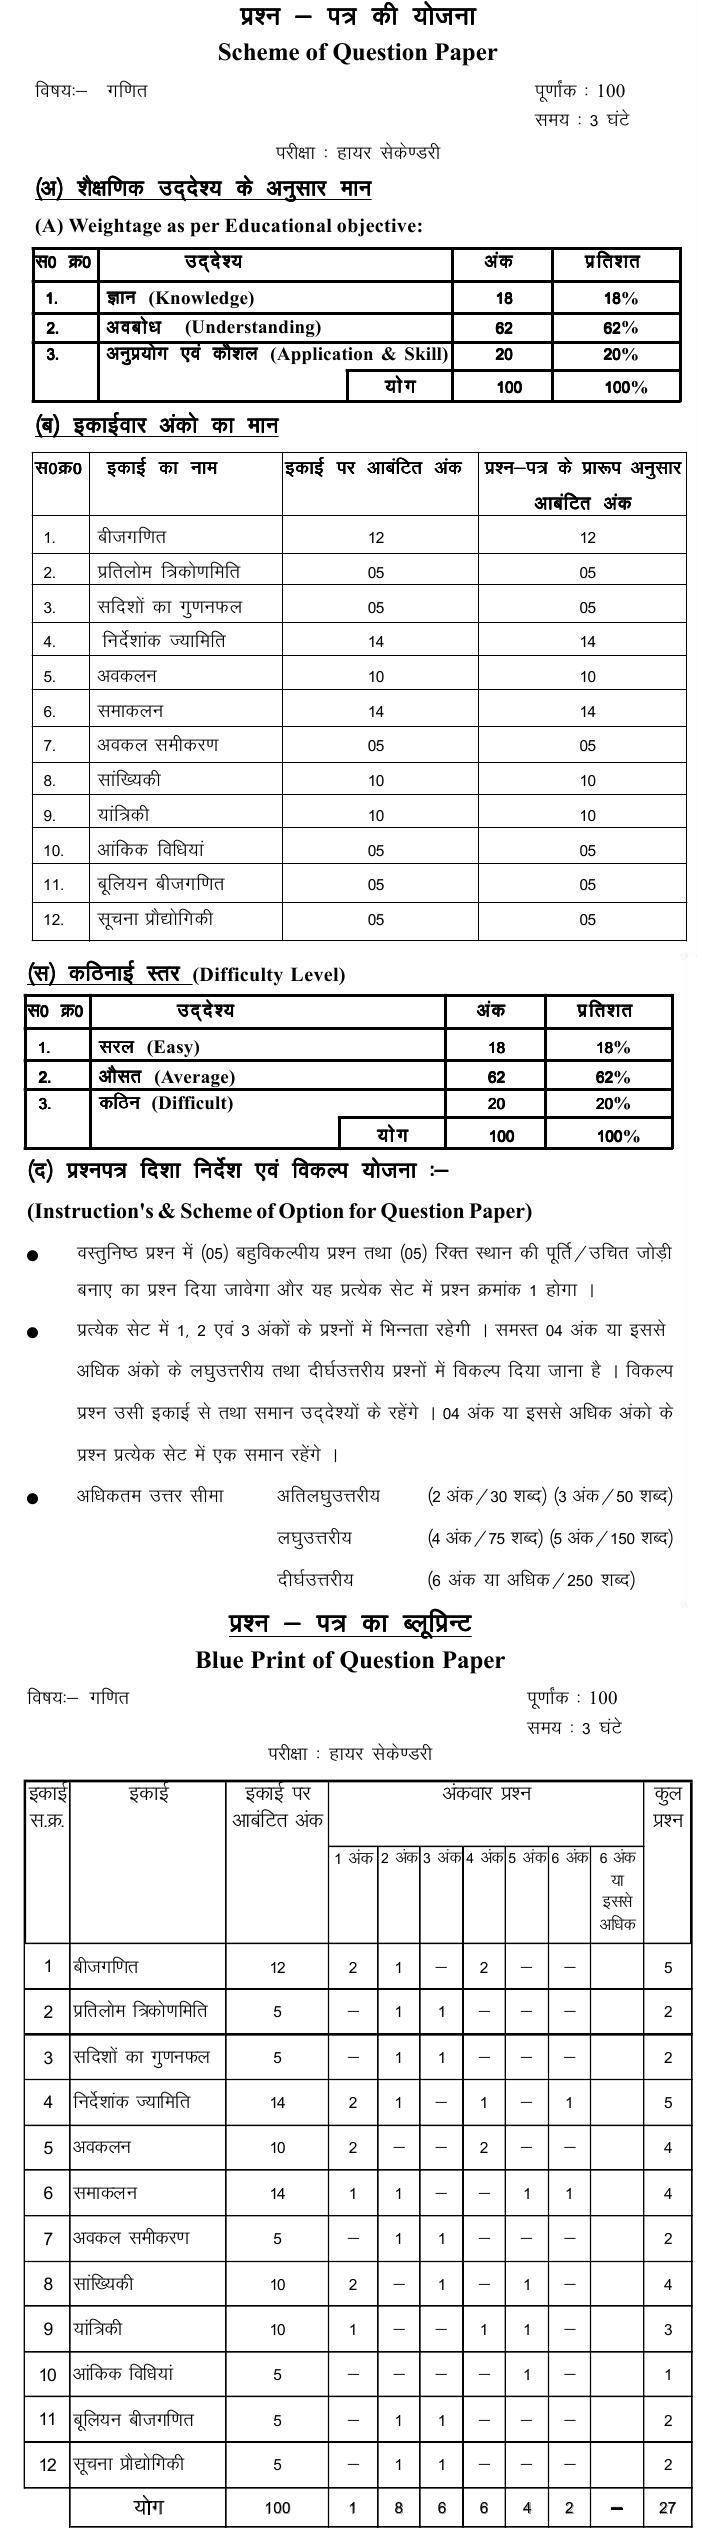 Chattisgarh Board Class 12 Scheme and Blue Print of Mathematics